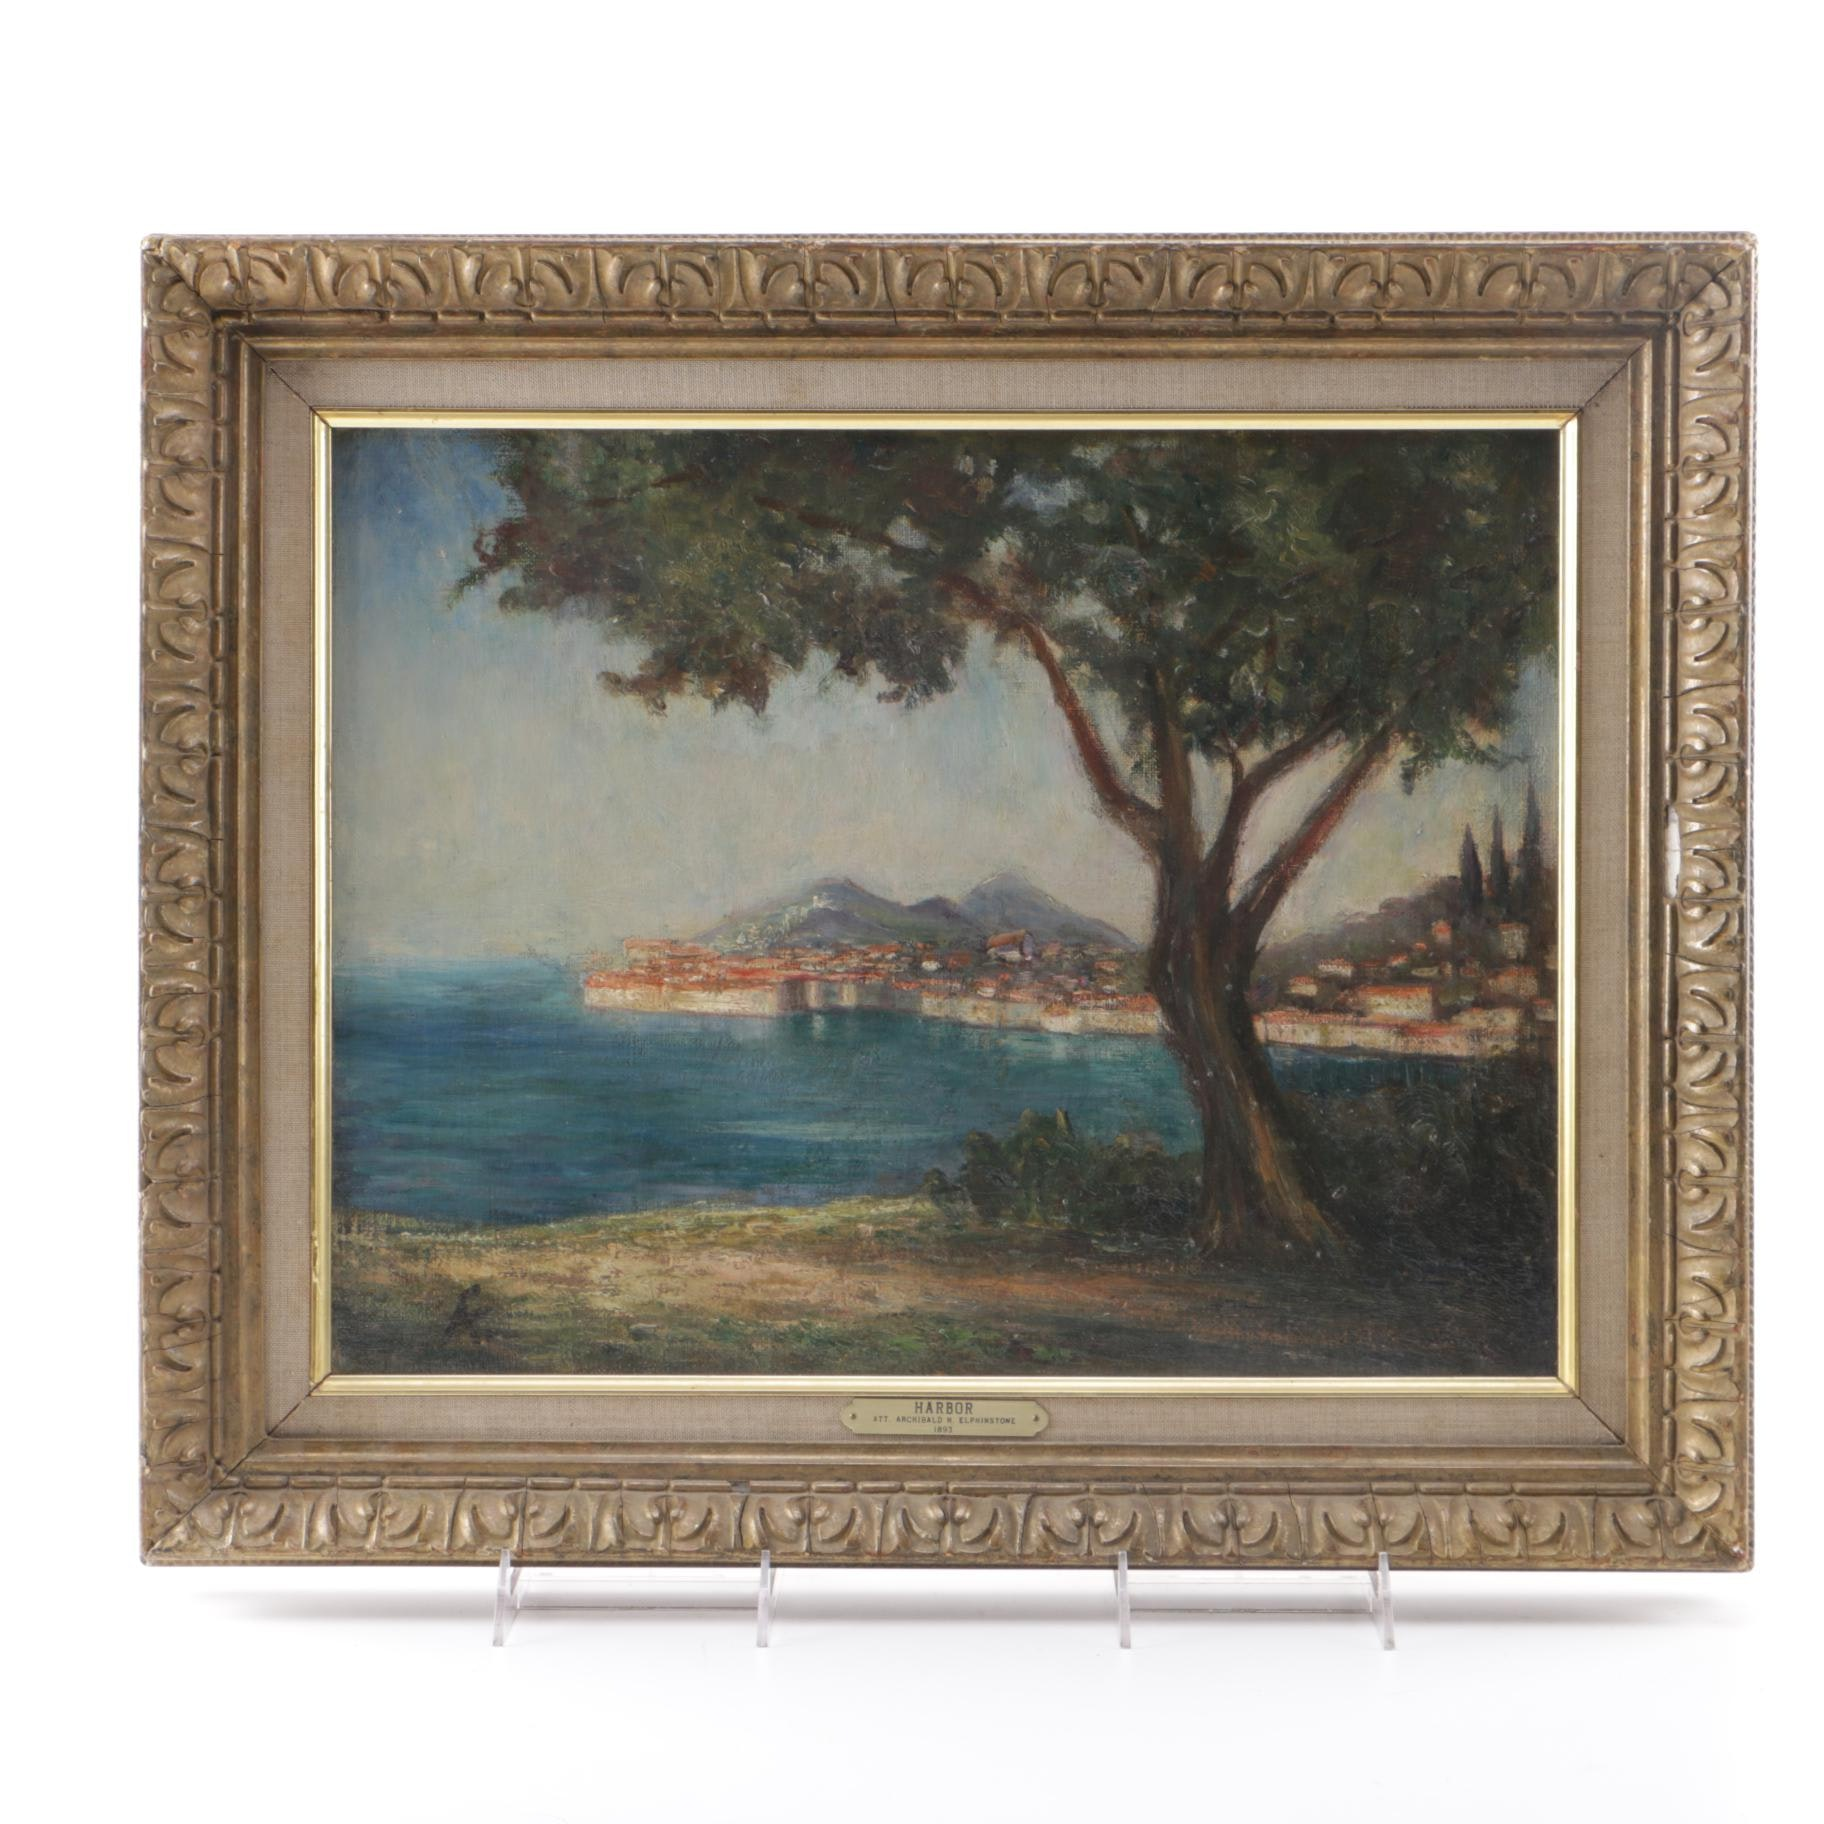 """1893 Attributed to Archibald Elphinstone Oil Painting on Canvas """"Harbor"""""""